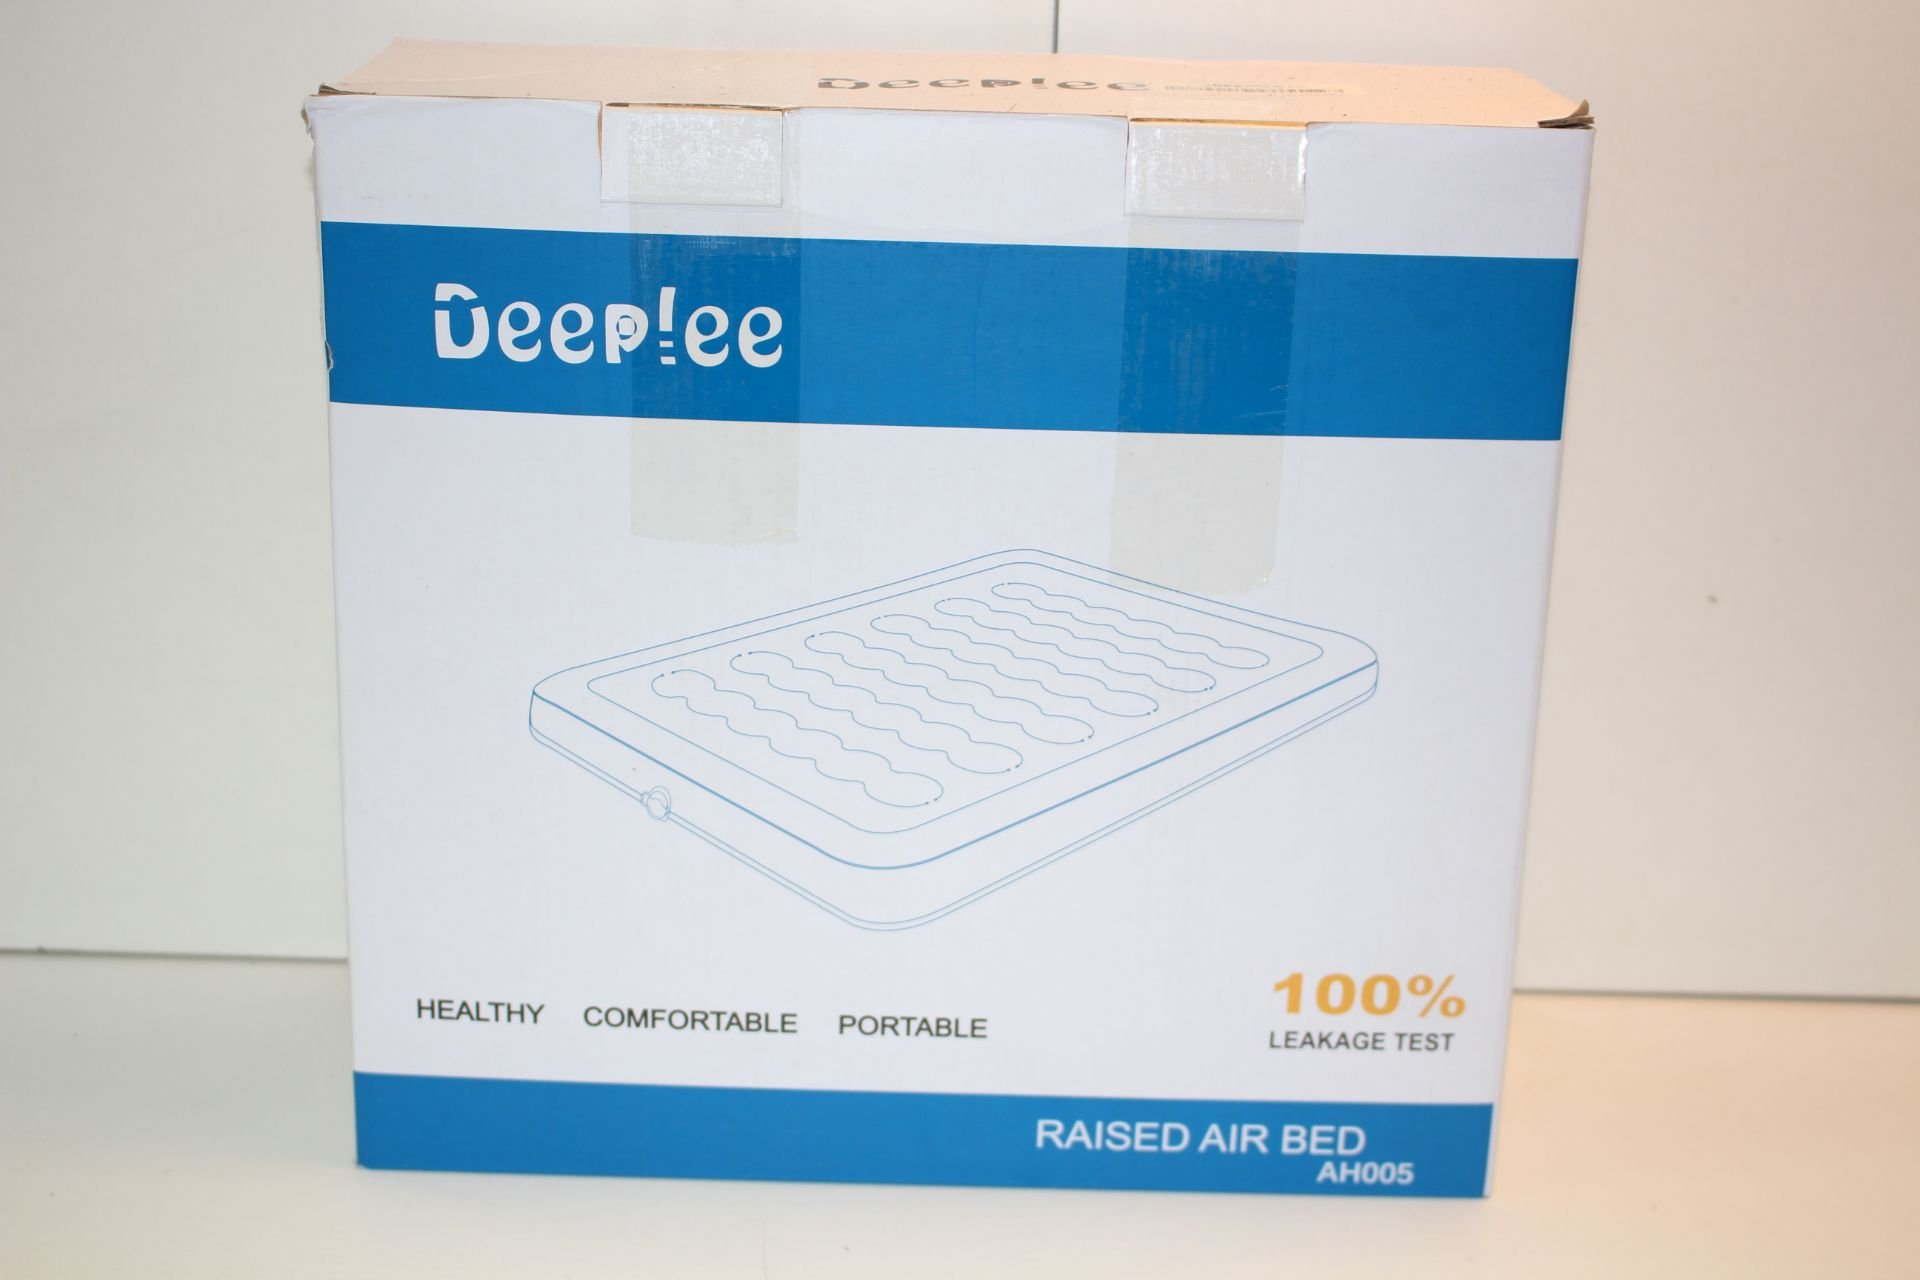 BOXED DEEPLEE TWIN AIRBEDCondition ReportAppraisal Available on Request- All Items are Unchecked/